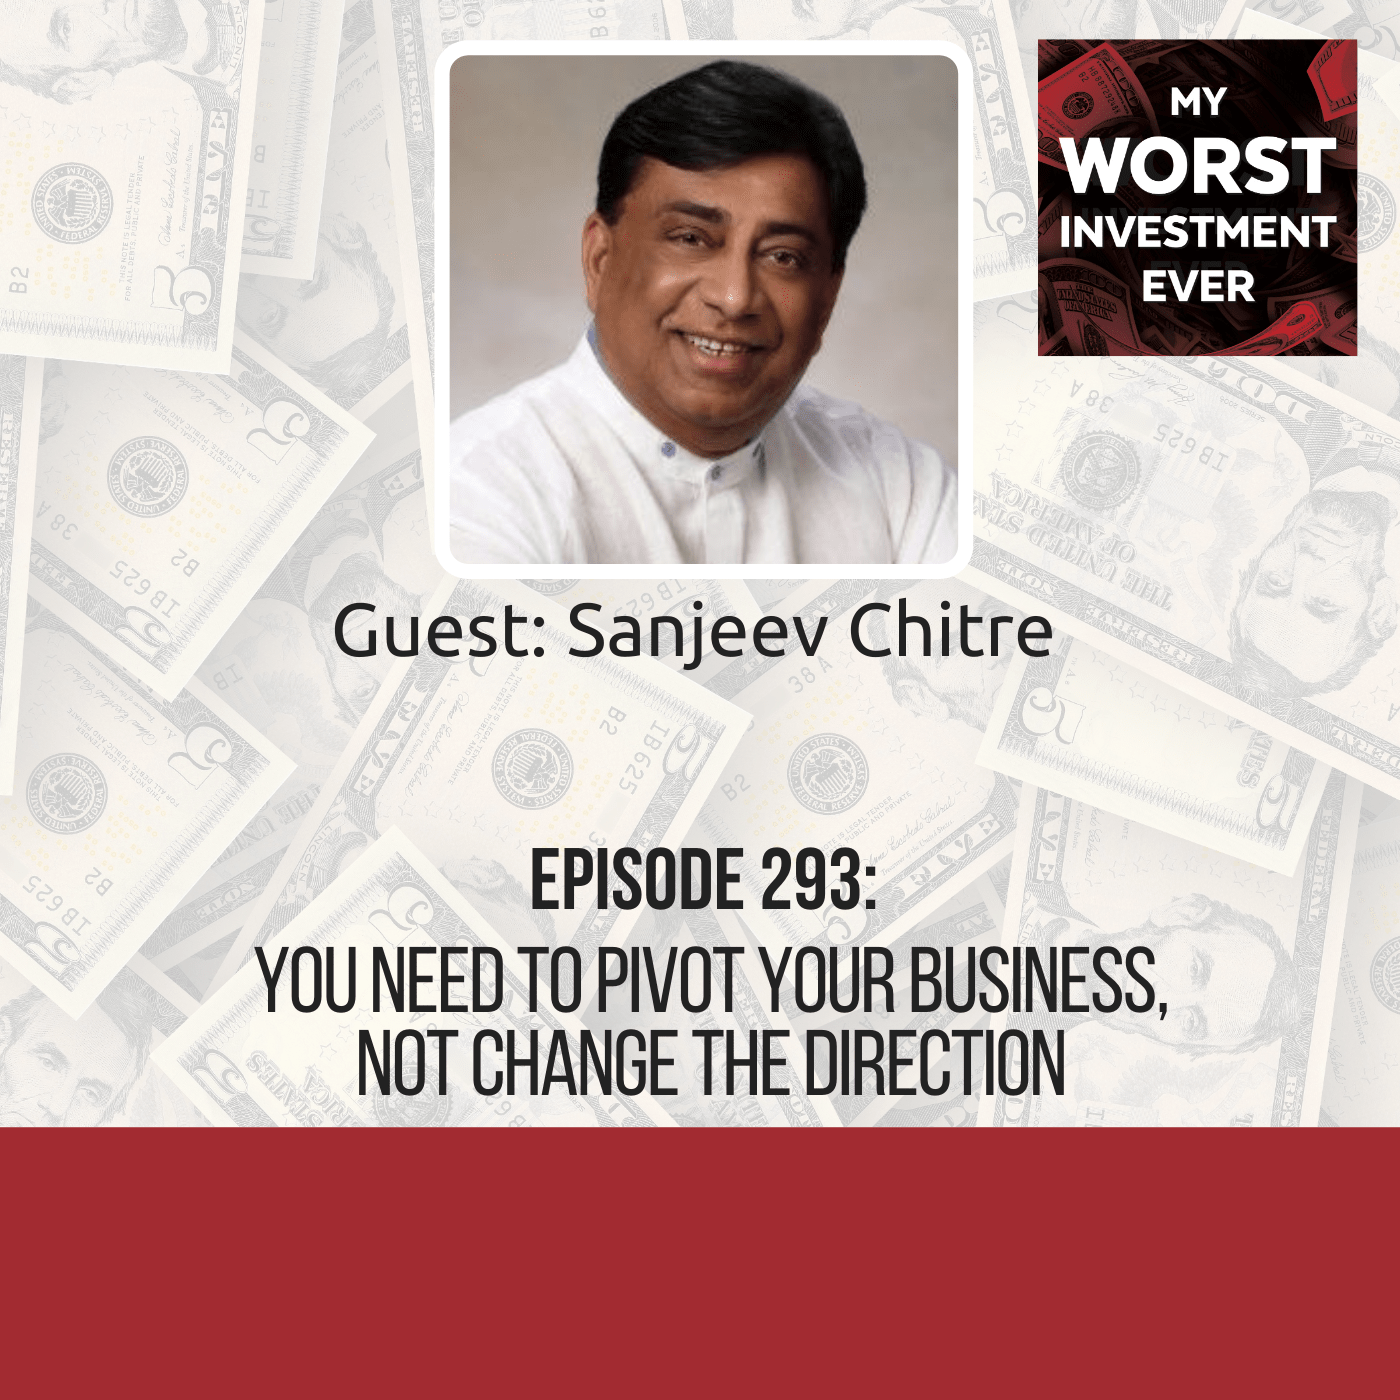 Sanjeev Chitre – You Need to Pivot Your Business, Not Change the Direction